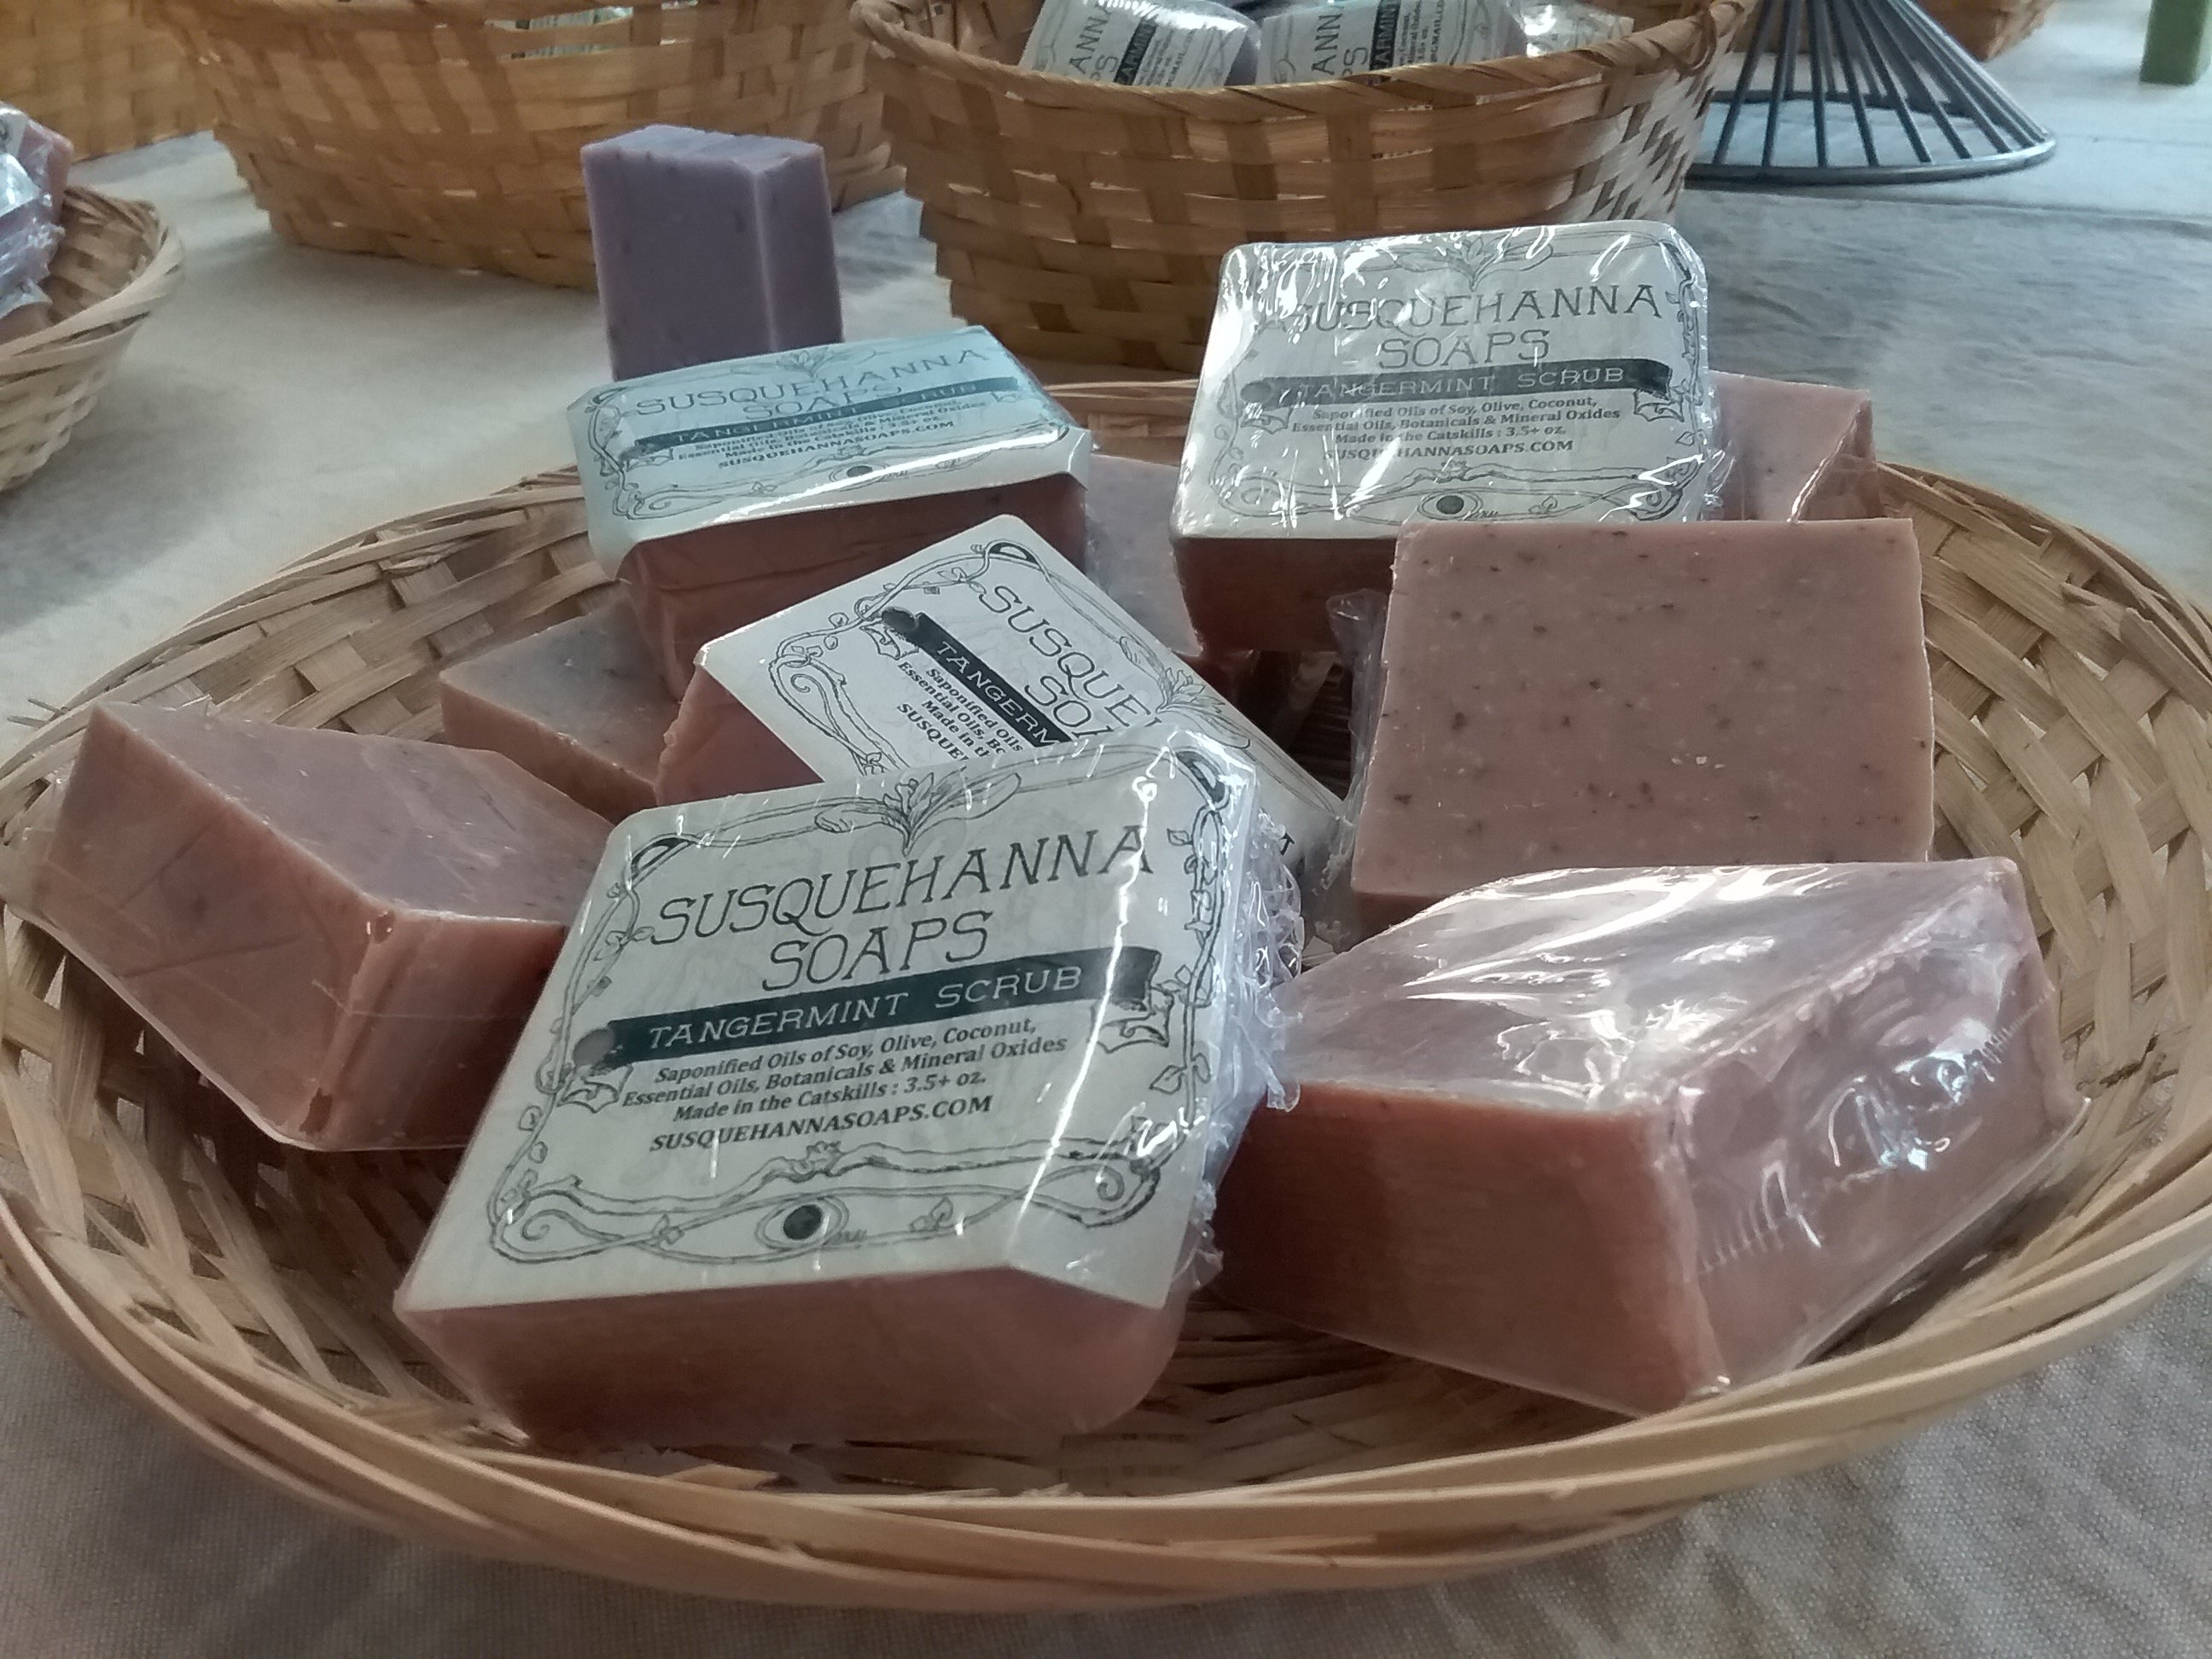 Tangermint scrub all natural soap